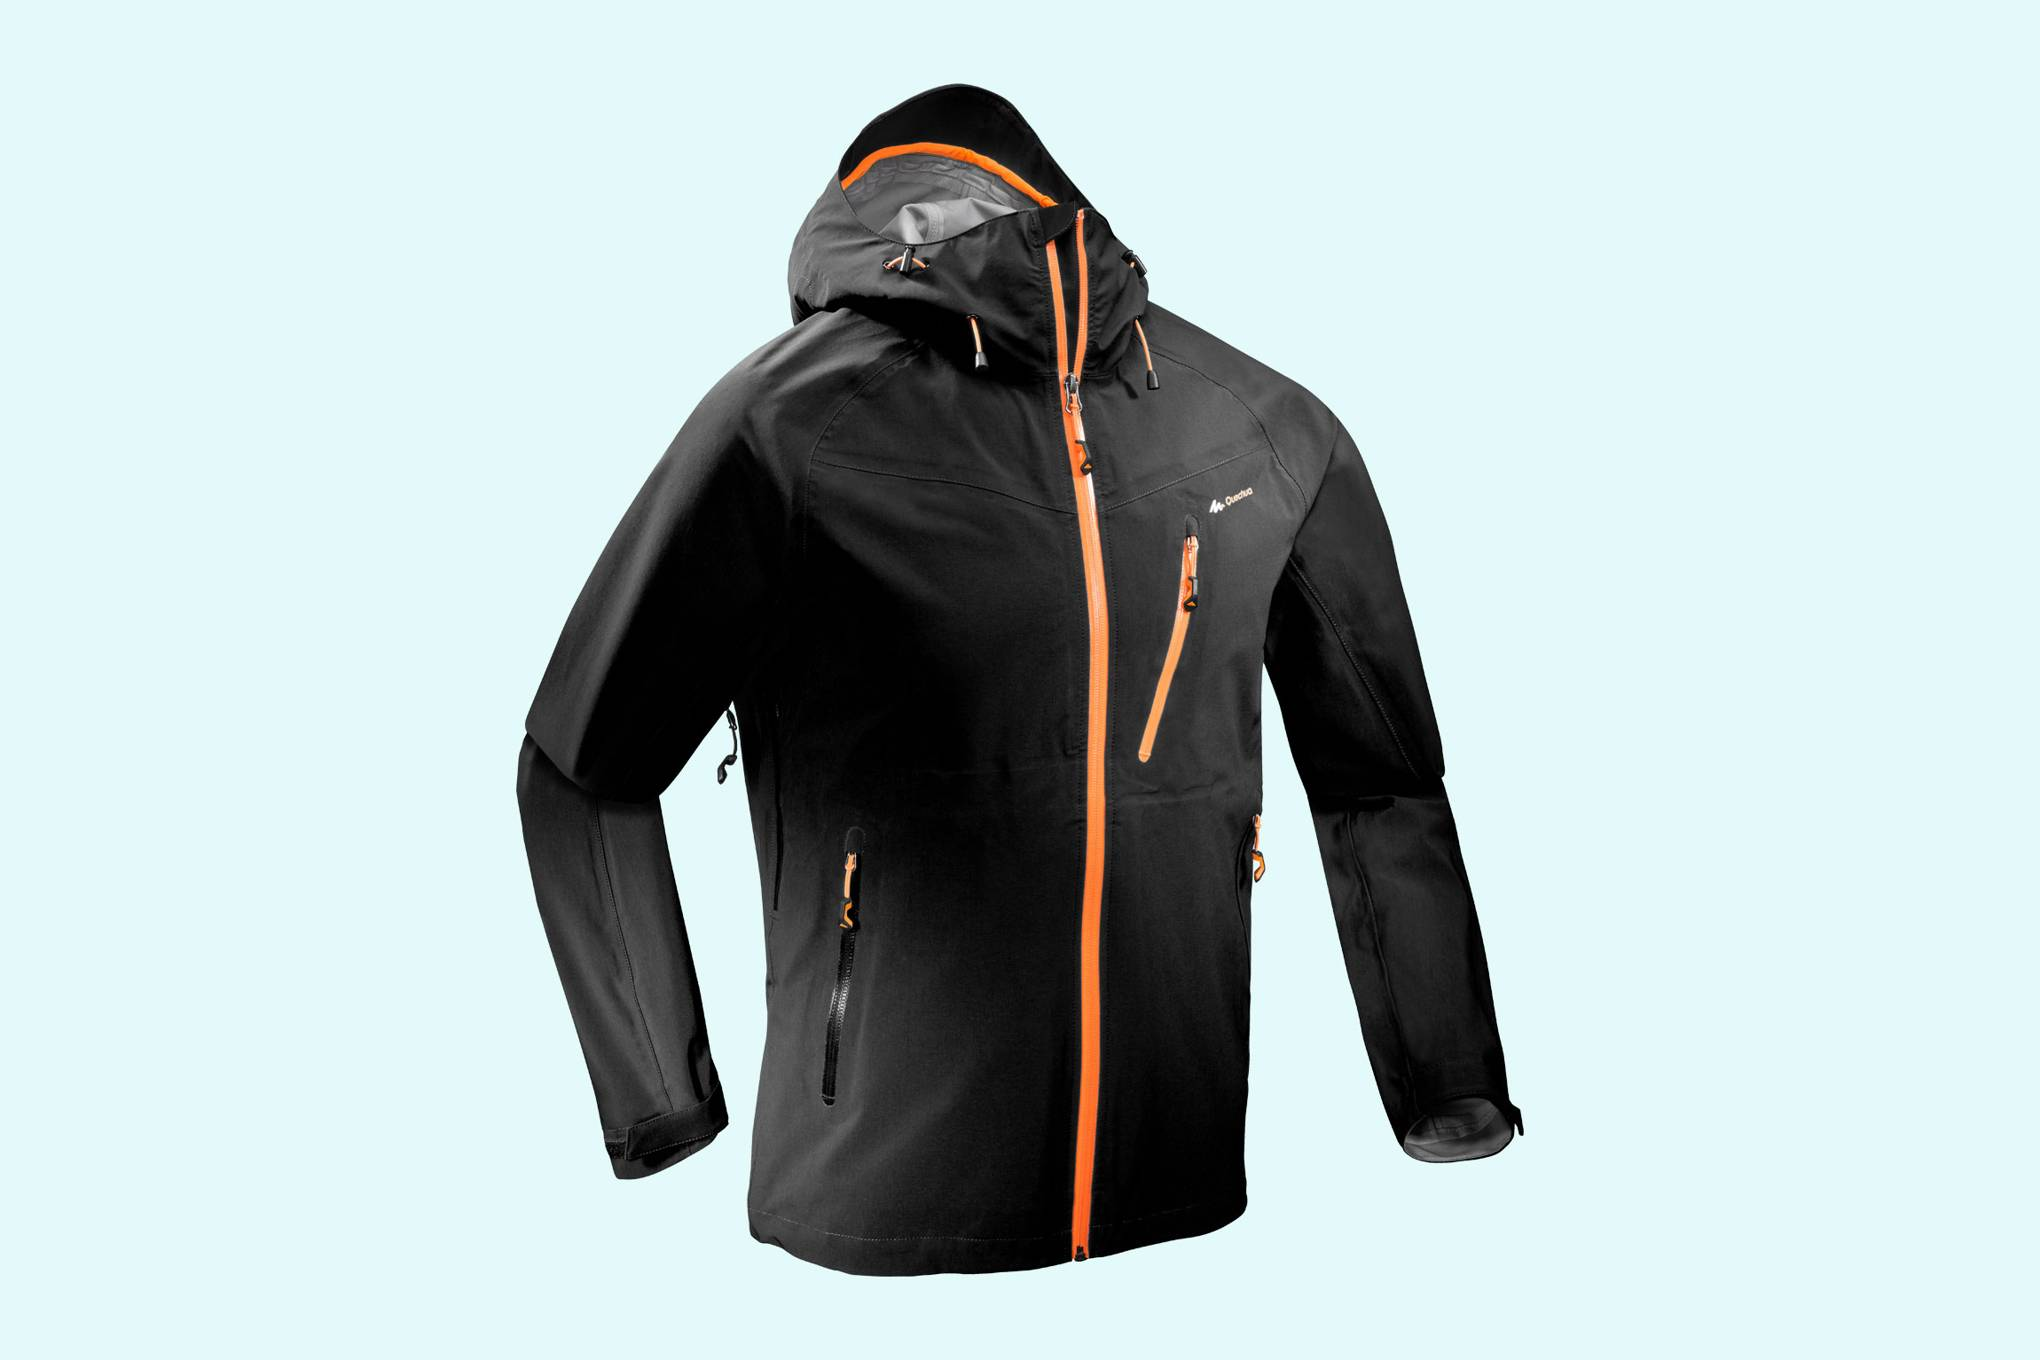 14305e078b4e4 The best waterproof jackets to keep you dry (and stylish) for men and women  | WIRED UK